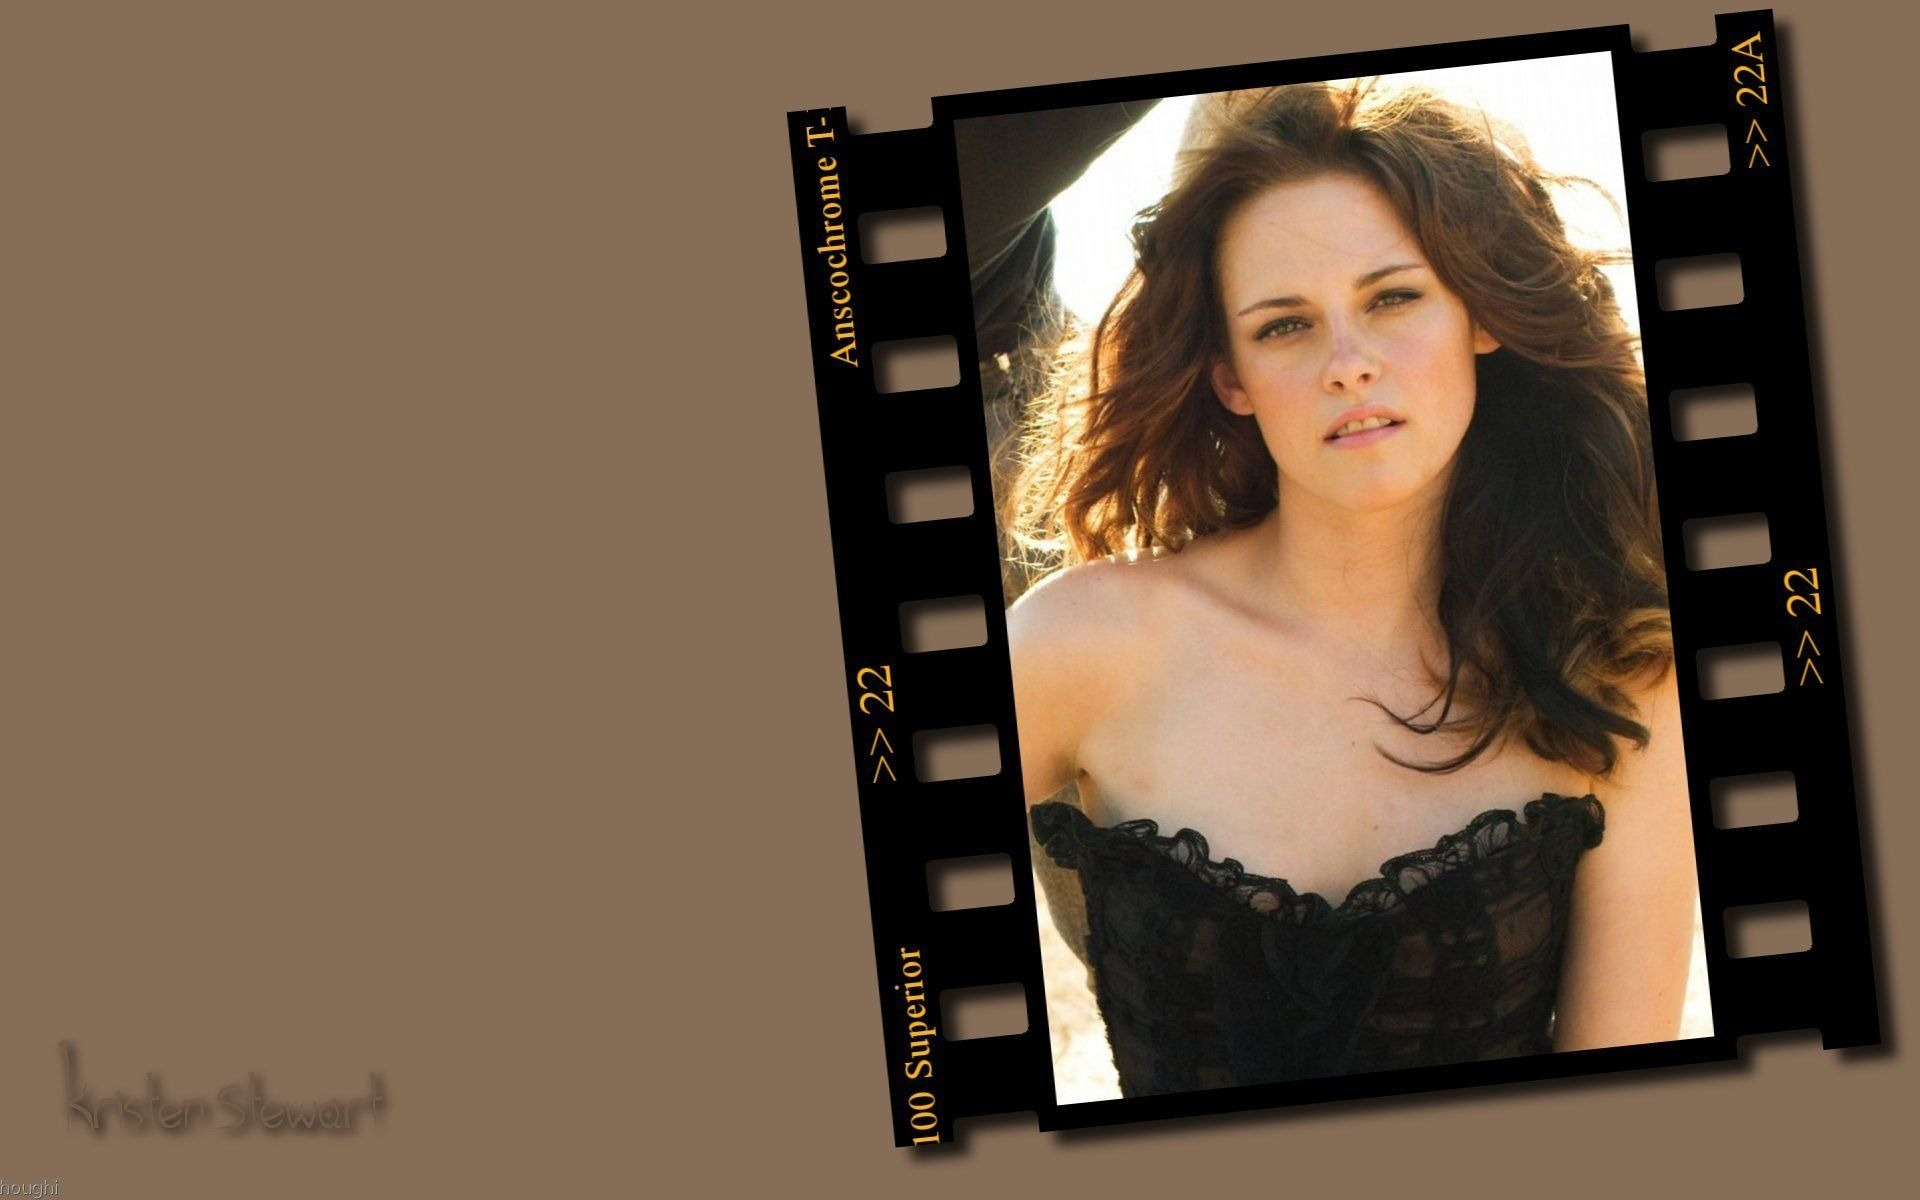 Kristen Stewart #010 - 1920x1200 Wallpapers Pictures Photos Images